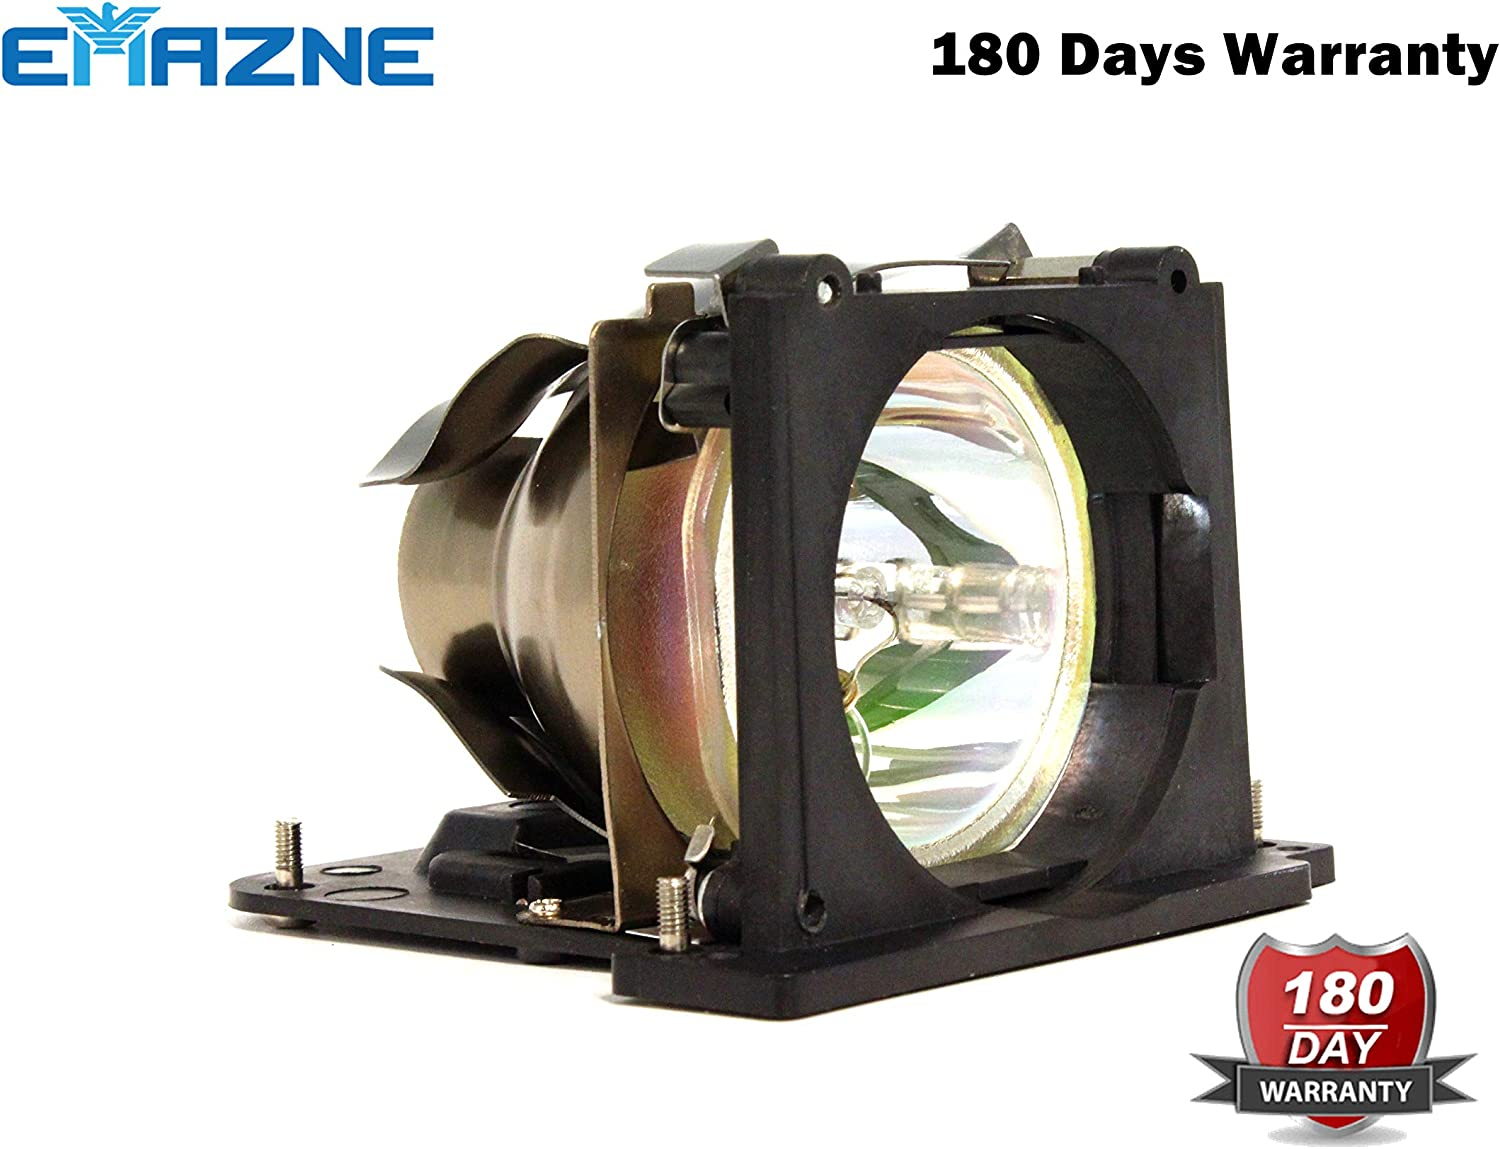 Emazne 310-4523 Projector Replacement Compatible Lamp with Housing for Dell 2200MP / 730-11199